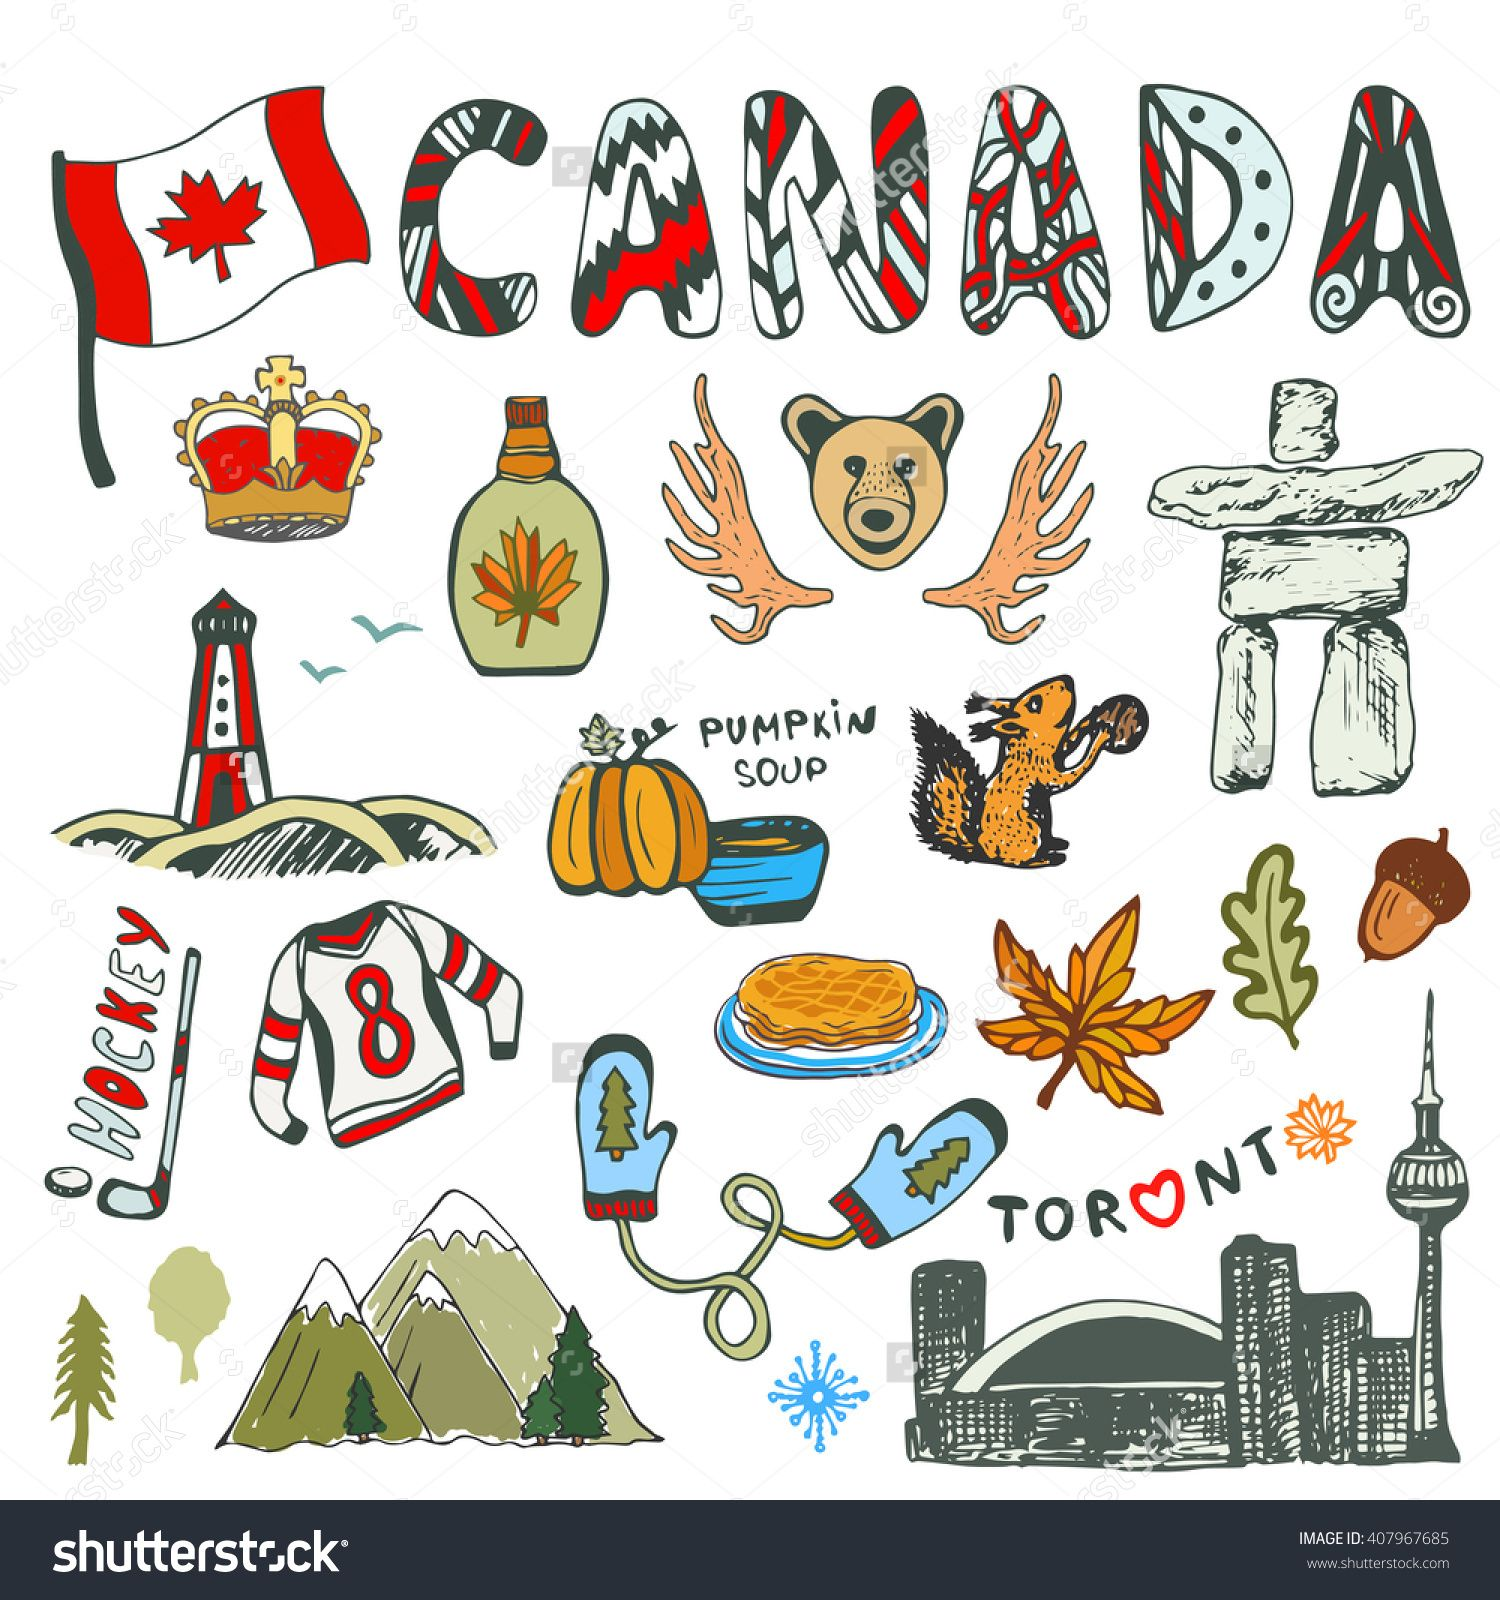 Pin by Kerri Schepers on Canada | Canadian culture, Travel ...